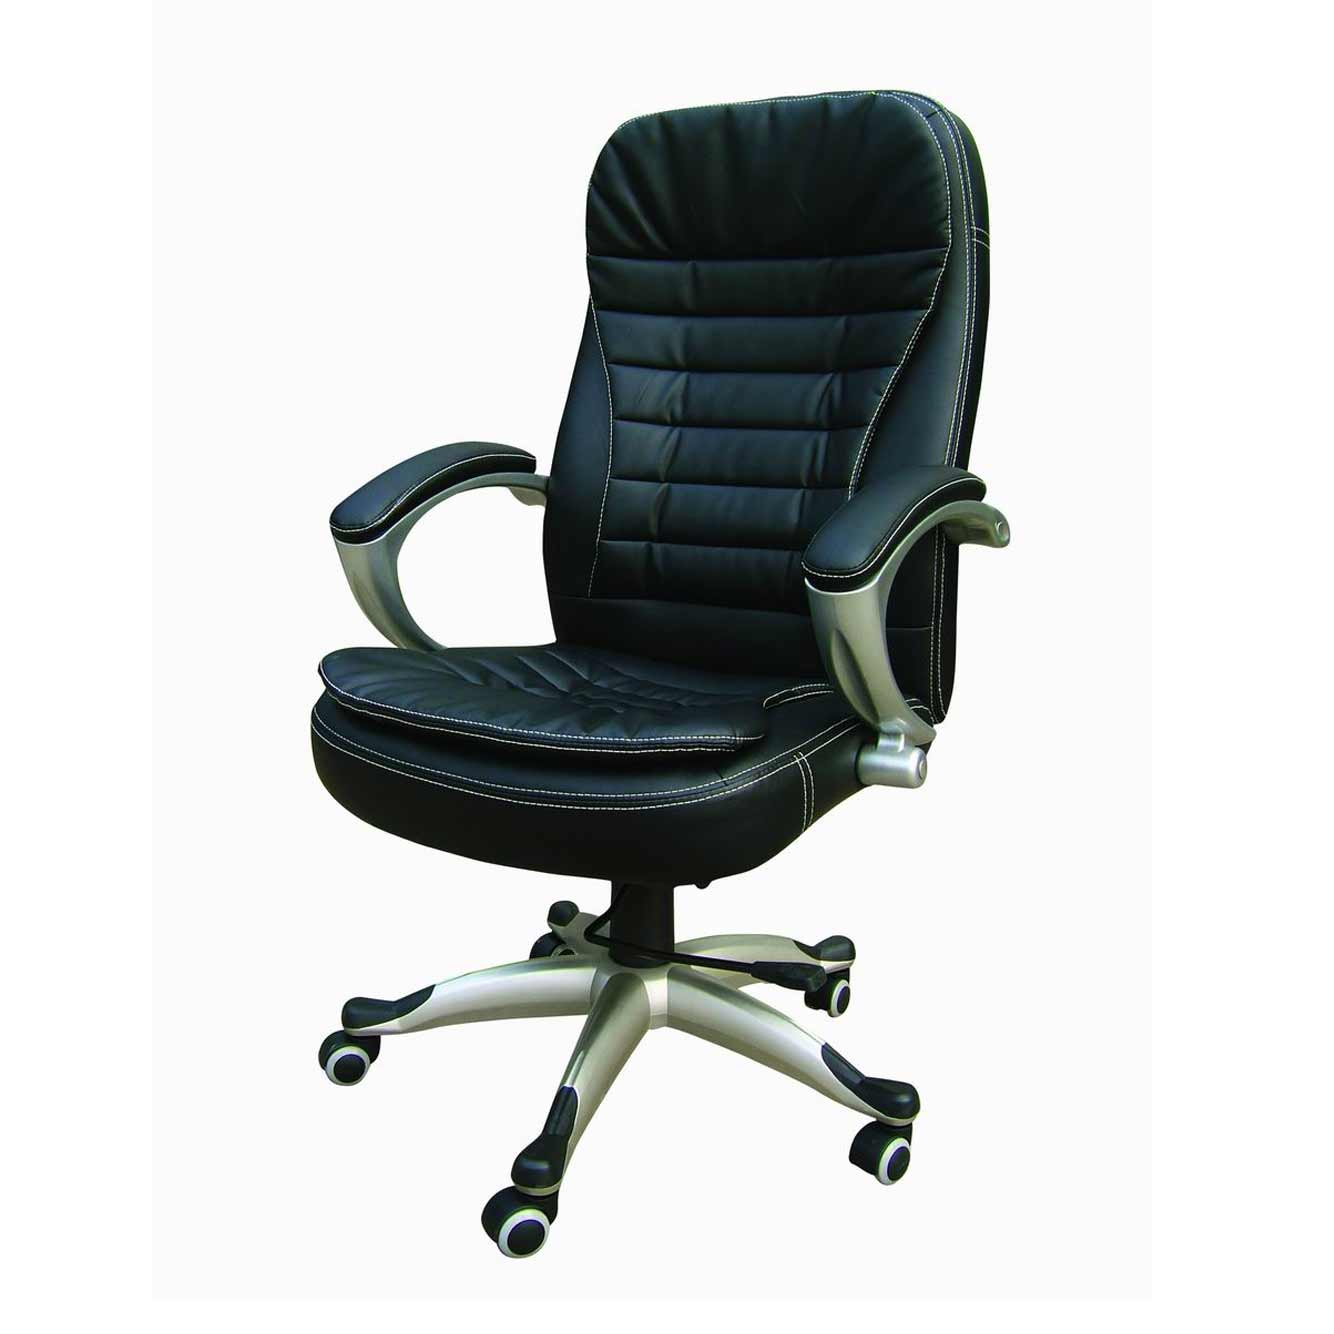 Ergonomic Large Office Chair with Lumbar Support